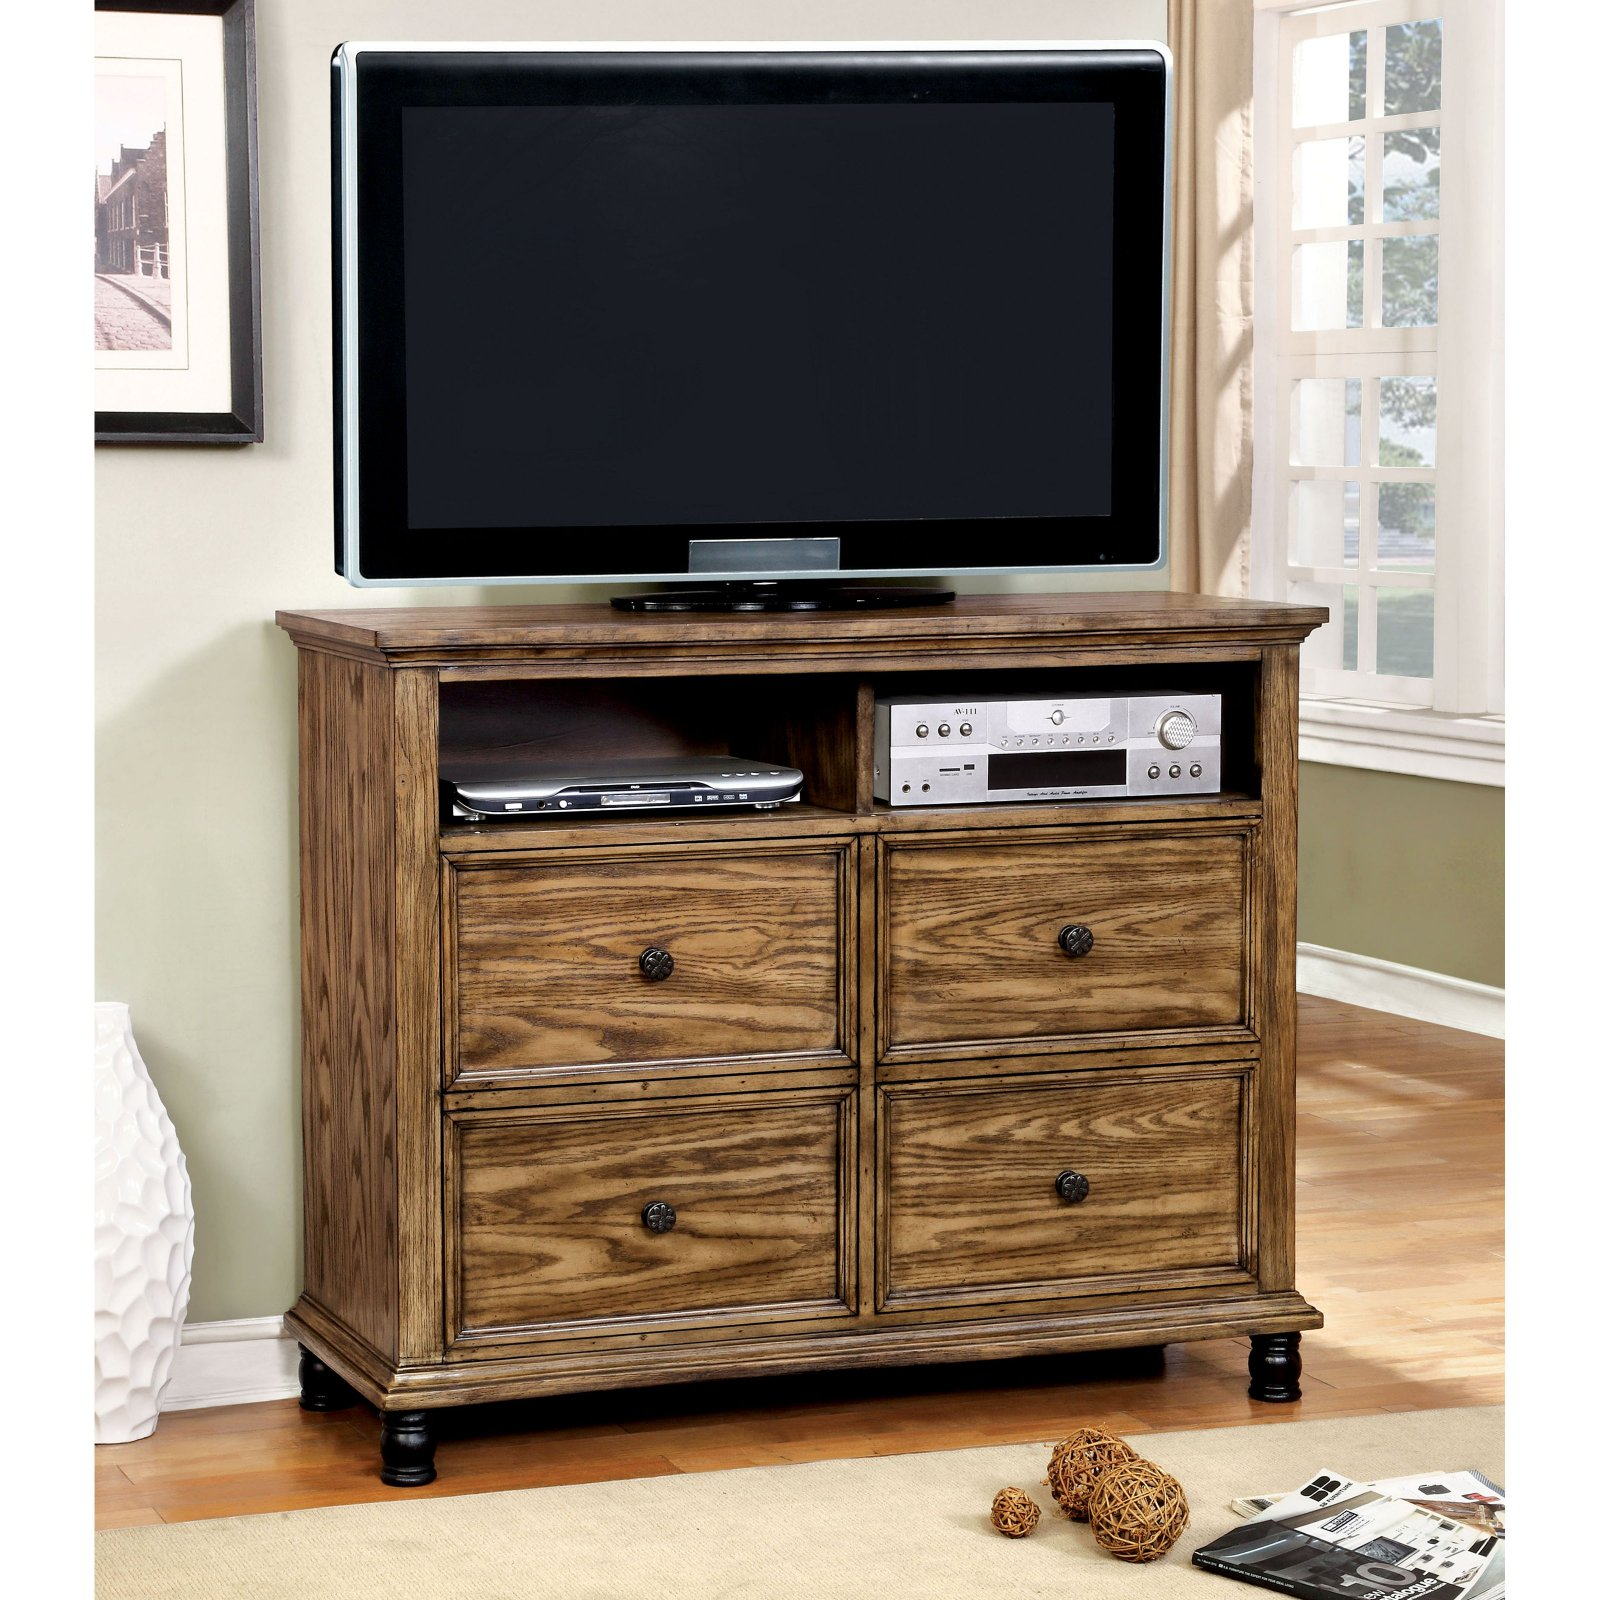 Furniture of America Maxwell 4 Drawer Industrial Media Chest